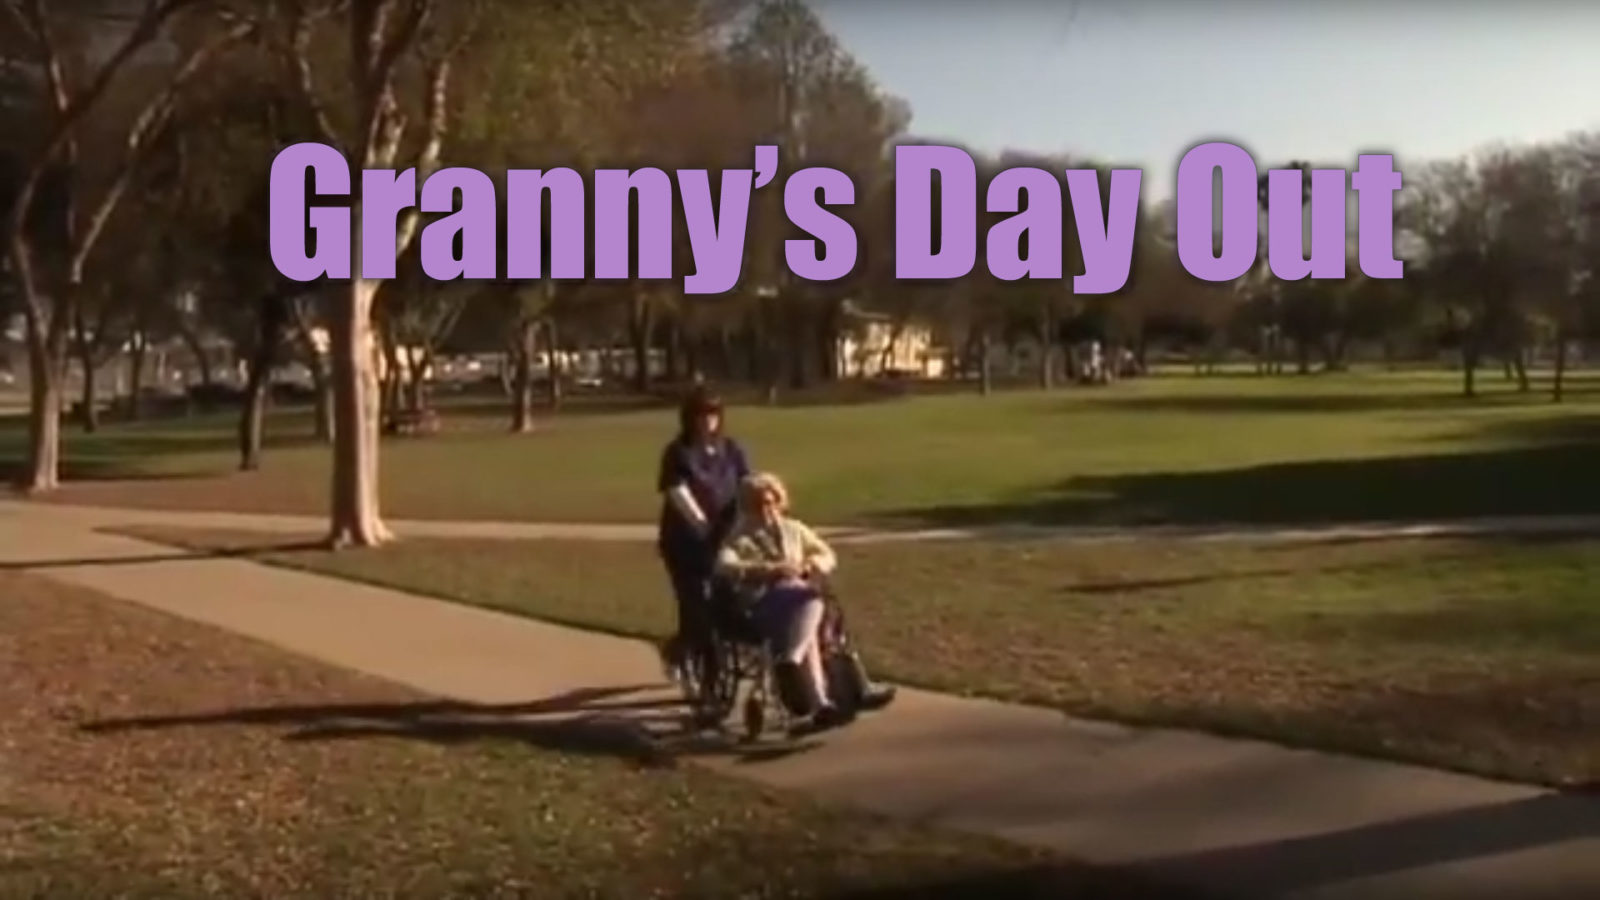 Granny's Day Out